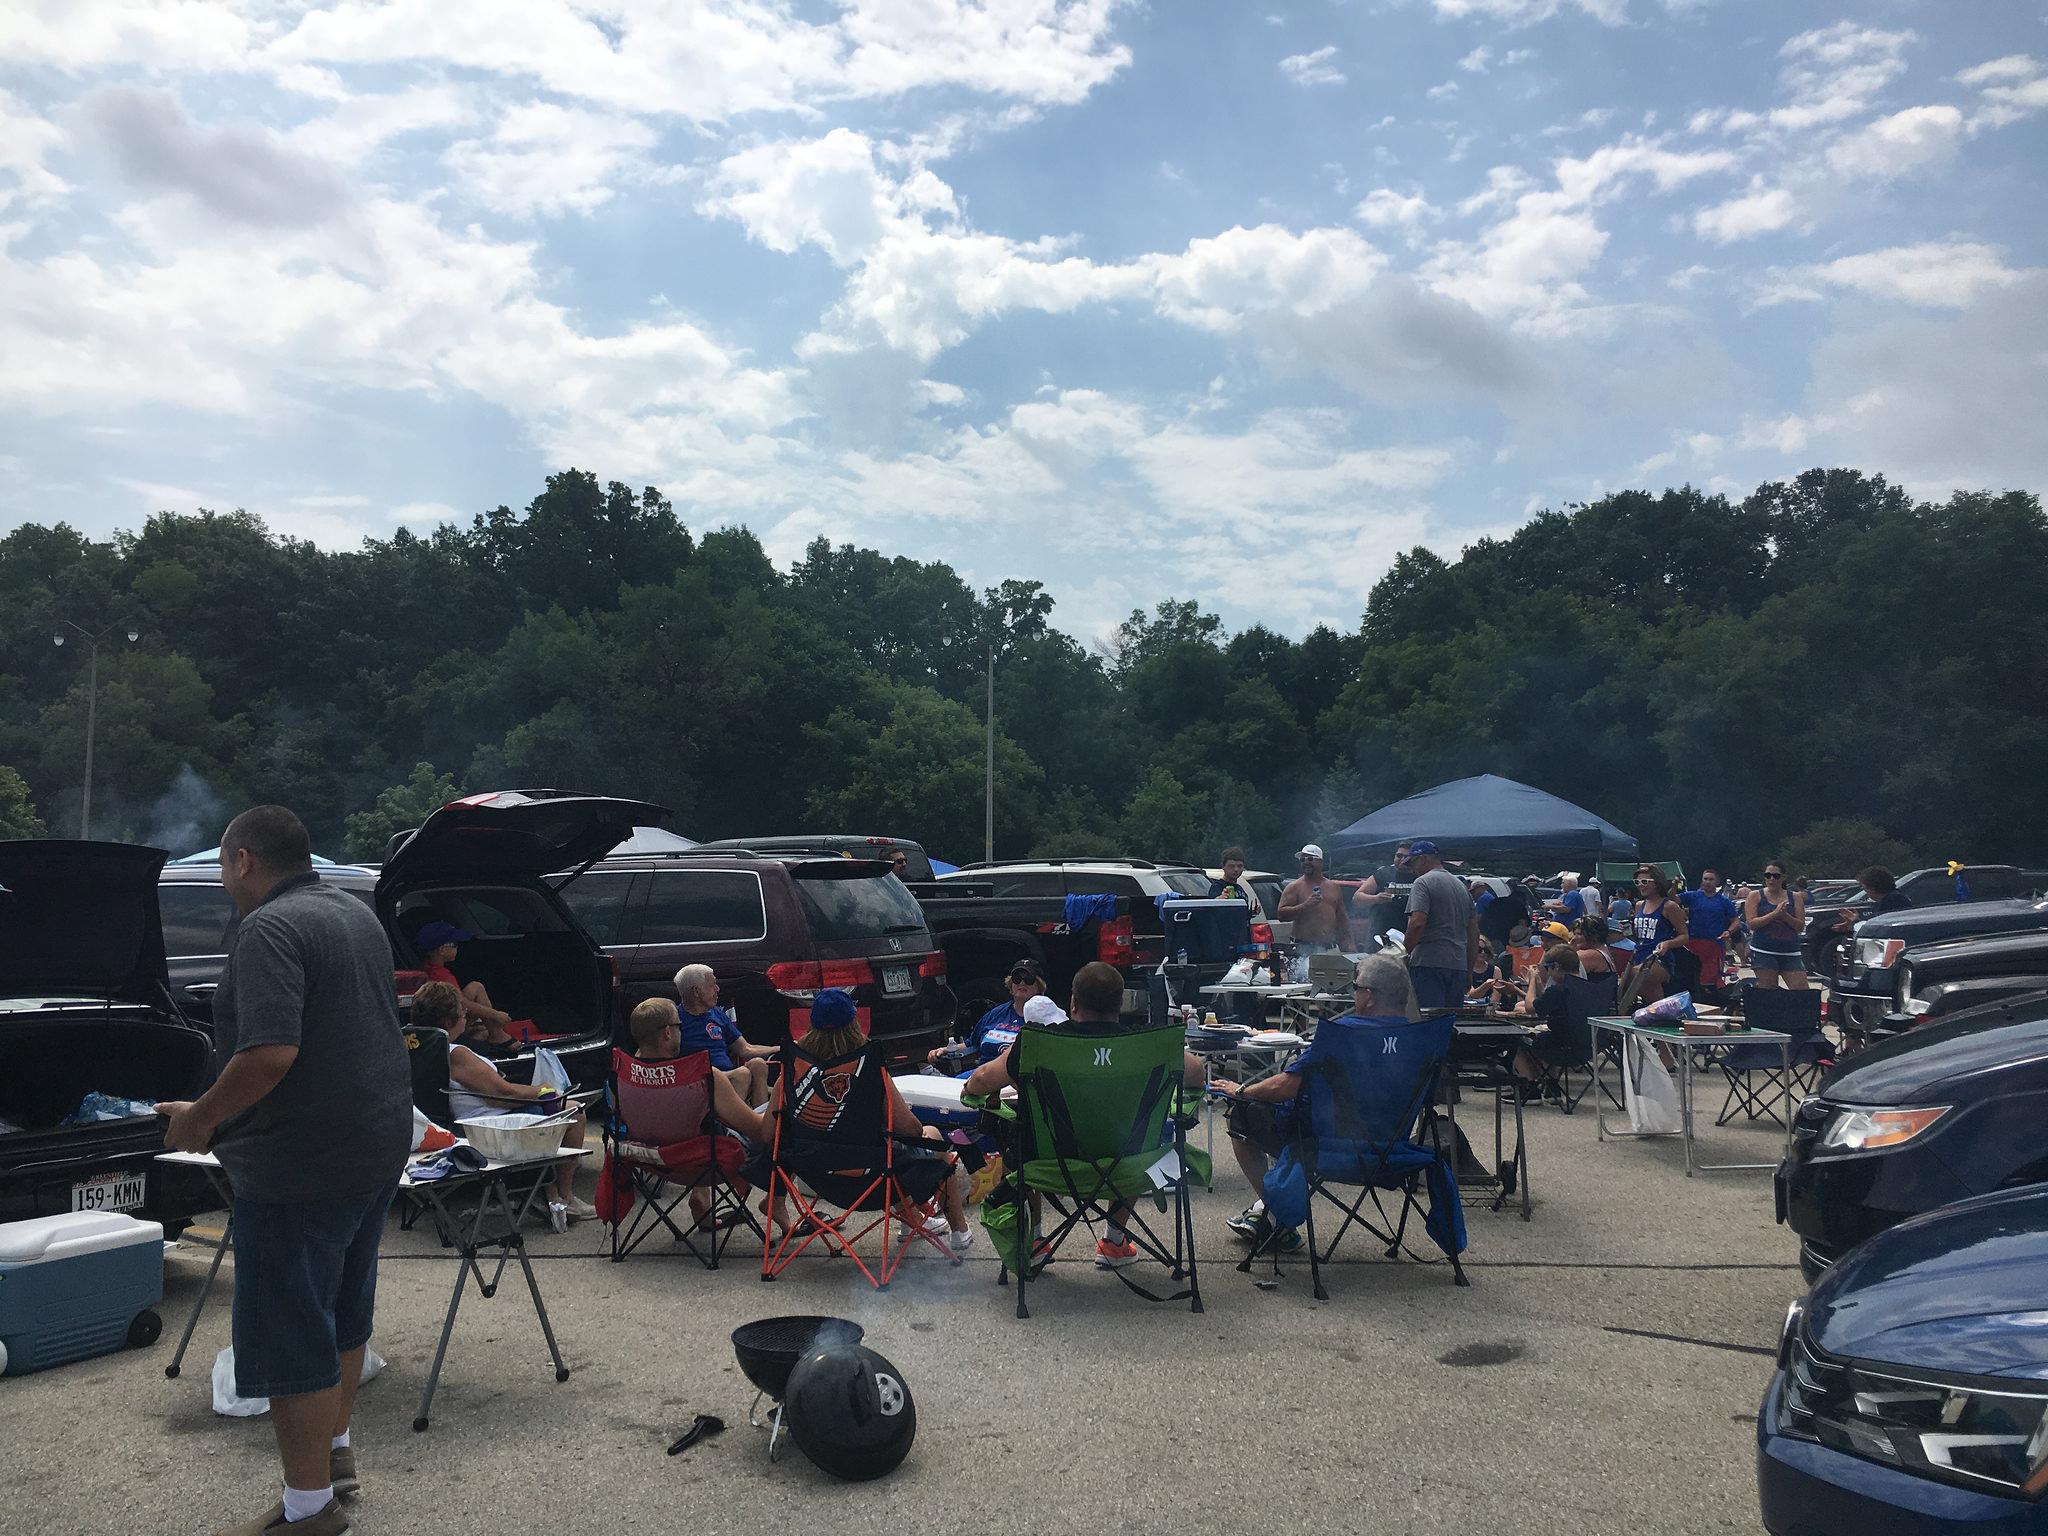 <table class=&quot;lightbox&quot;><tr><td colspan=2 class=&quot;lightbox-title&quot;>Miller Park Tailgating</td></tr><tr><td colspan=2 class=&quot;lightbox-caption&quot;>Groups of people barbecue and relax behind their cars before a Brewer game in 2016.</td></tr><tr><td colspan=2 class=&quot;lightbox-spacer&quot;></td></tr><tr class=&quot;lightbox-detail&quot;><td class=&quot;cell-title&quot;>Source: </td><td class=&quot;cell-value&quot;>From Flickr. Photograph by Julie Corsi. CC BY 2.0.<br /><a href=&quot;https://www.flickr.com/photos/corsinet/28243447550/&quot; target=&quot;_blank&quot;>Flickr</a></td></tr><tr class=&quot;filler-row&quot;><td colspan=2>&nbsp;</td></tr></table>